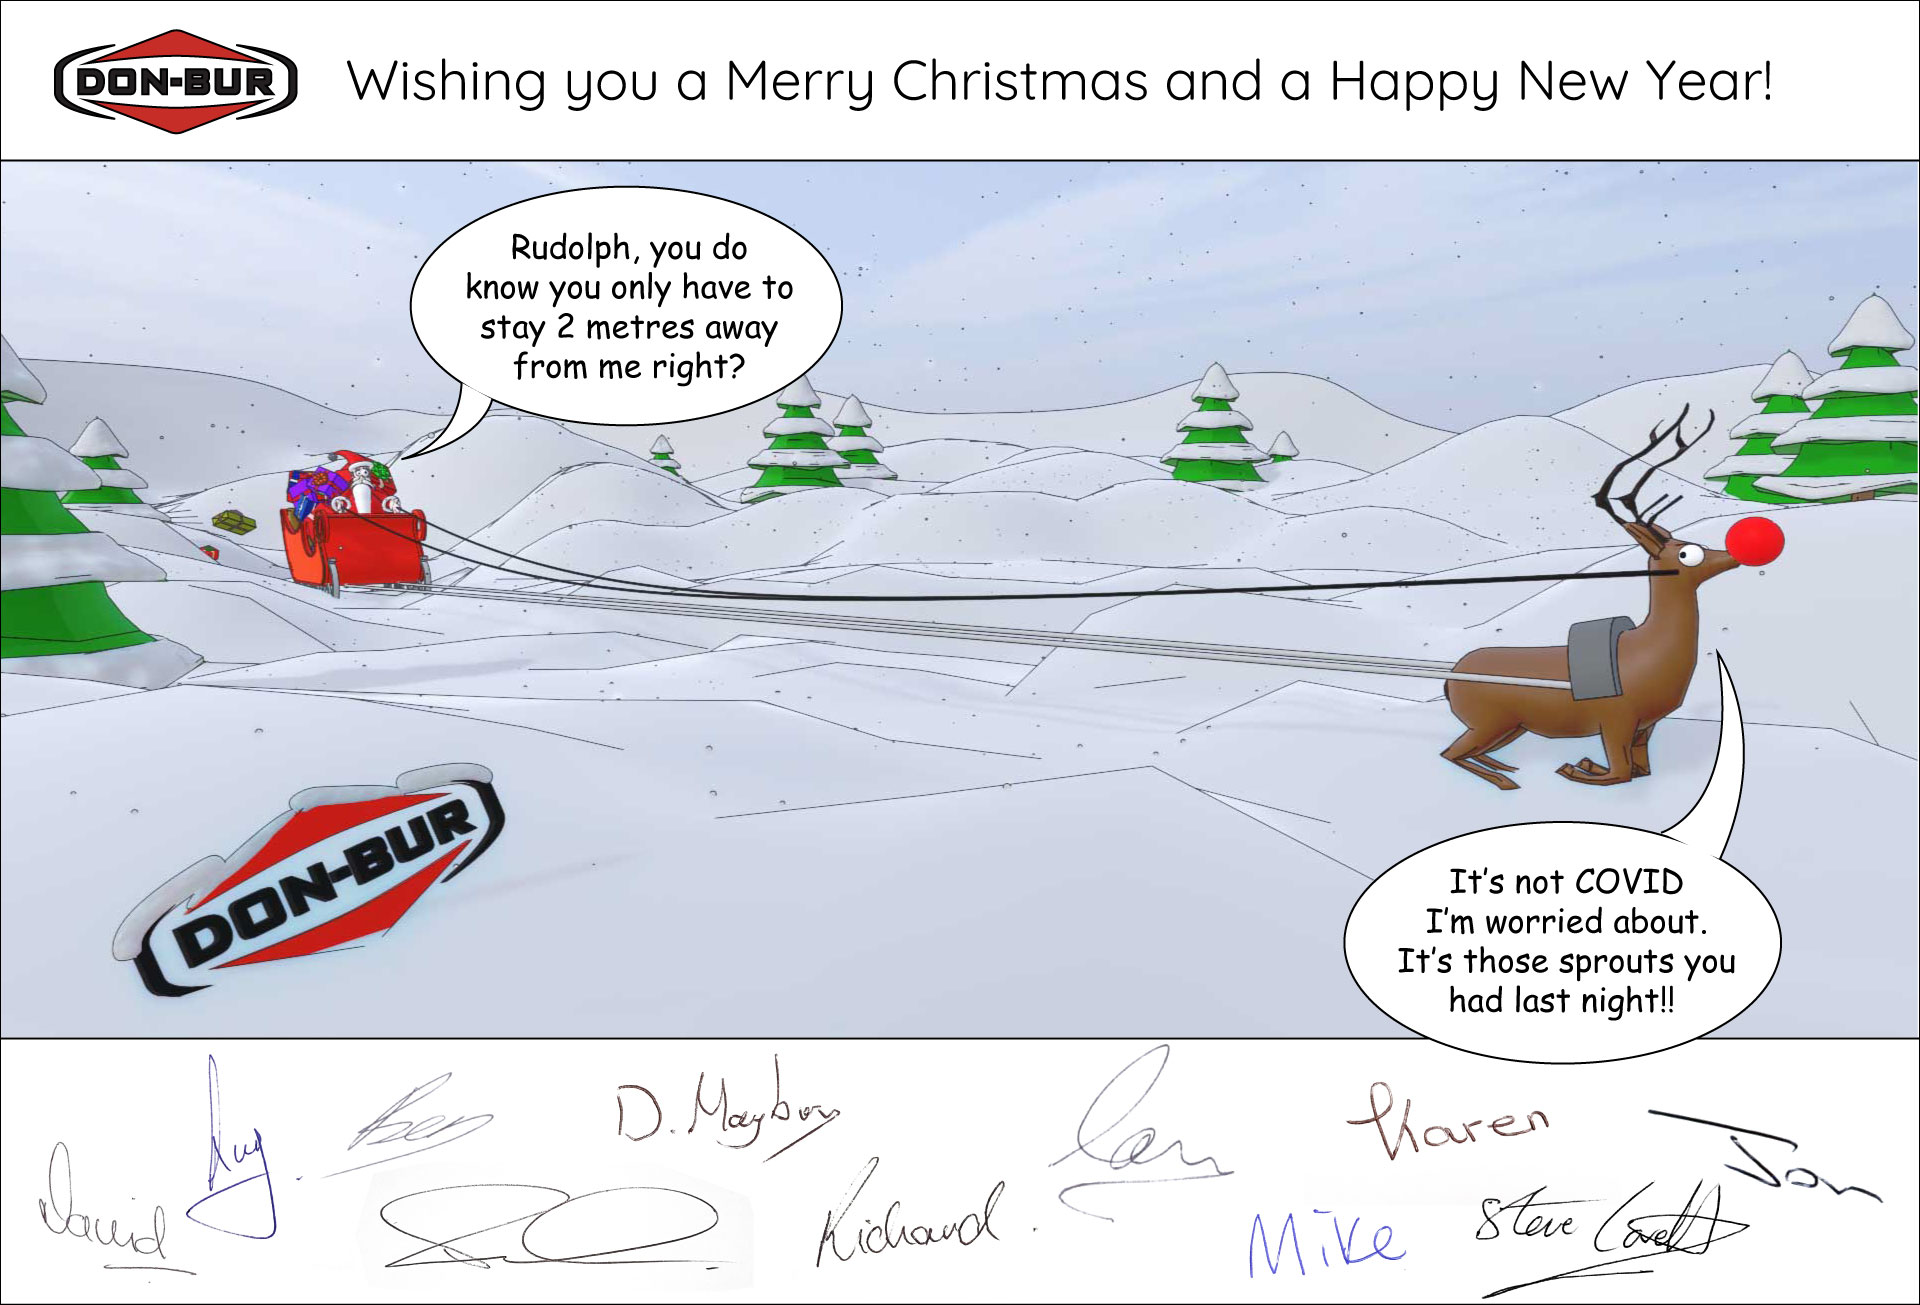 Happy Christmas 2020 from all at Don-Bur